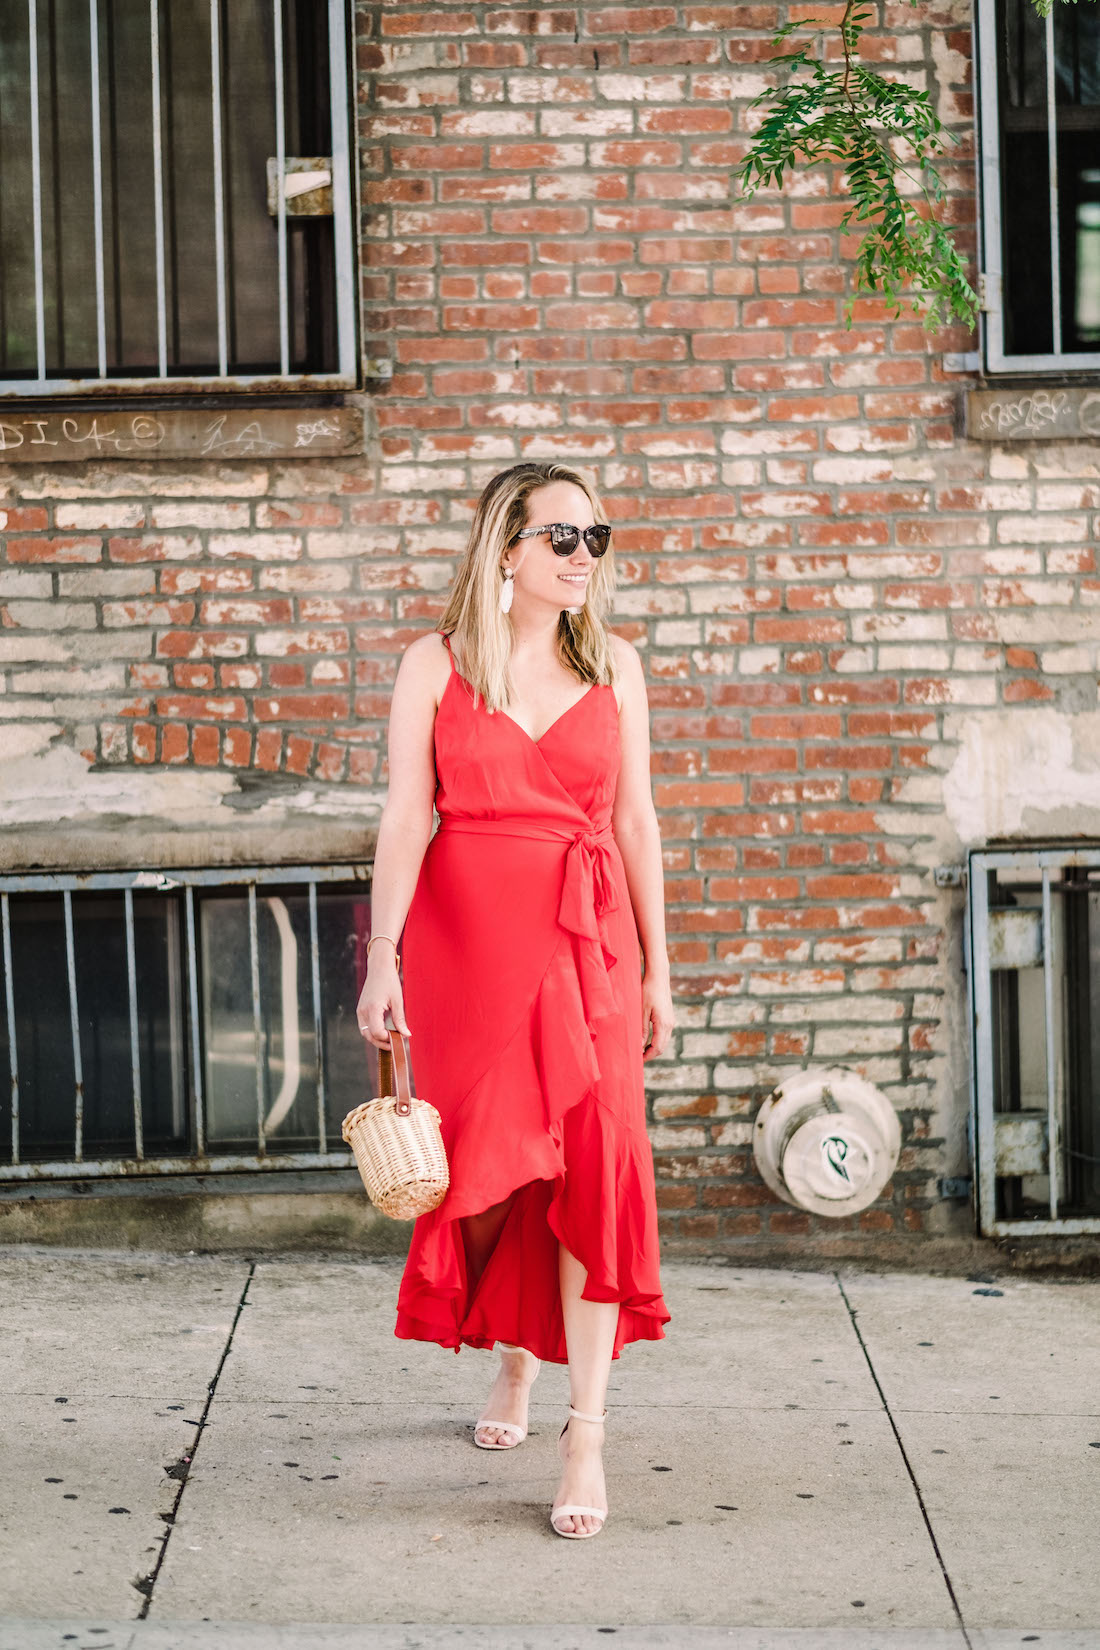 J.Crew Red Dress // BaubleBar Earrings // Steve Madden Sandals // Polaroid Sunglasses // Lindroth Design Mini Birkin